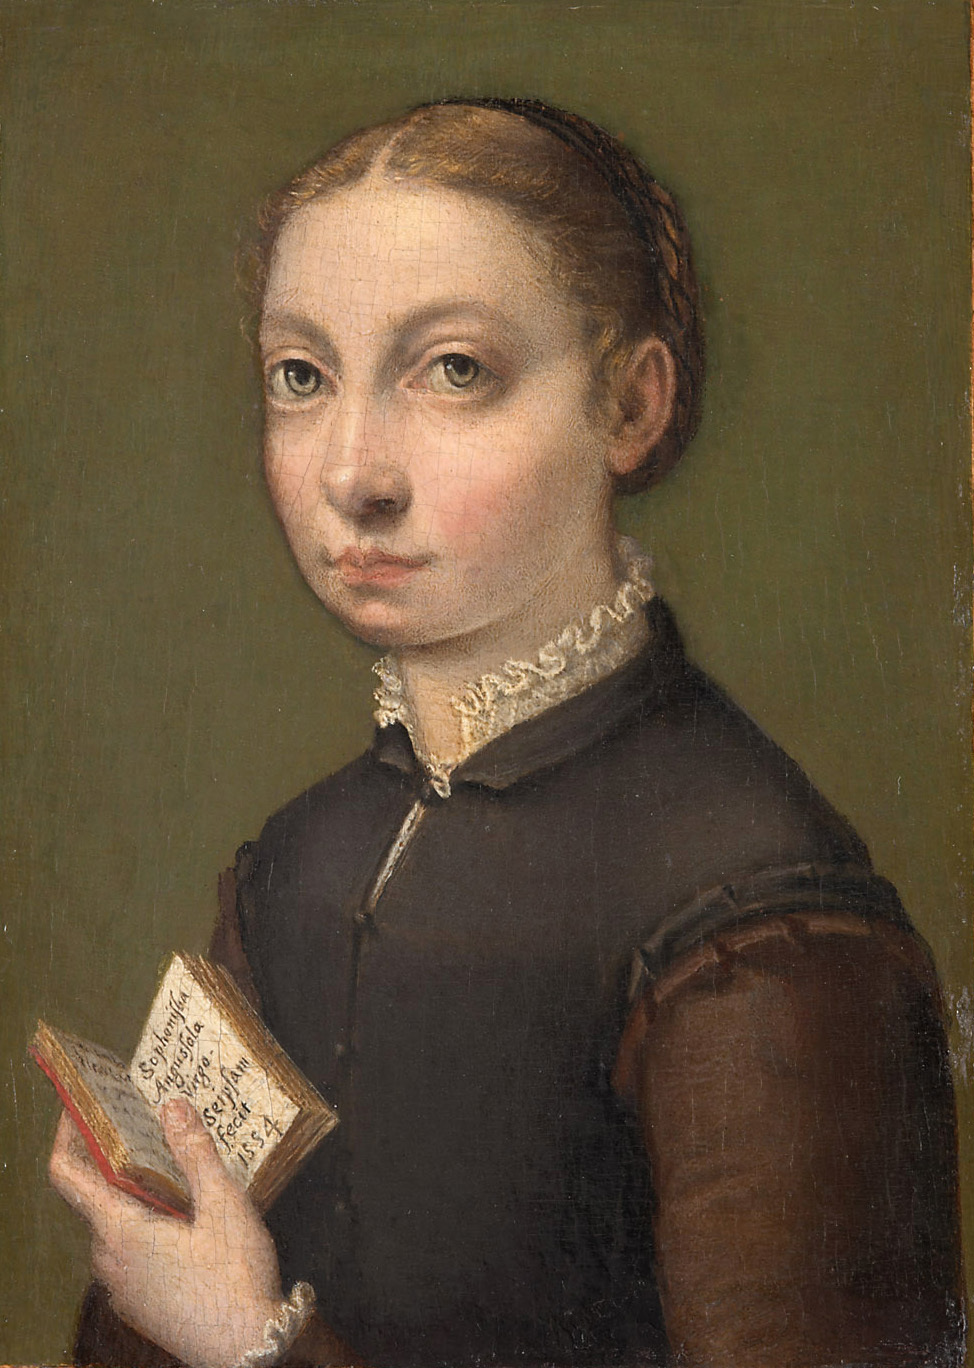 Sofonisba Anguissola, Self-portrait, 1554. Oil on canvas.